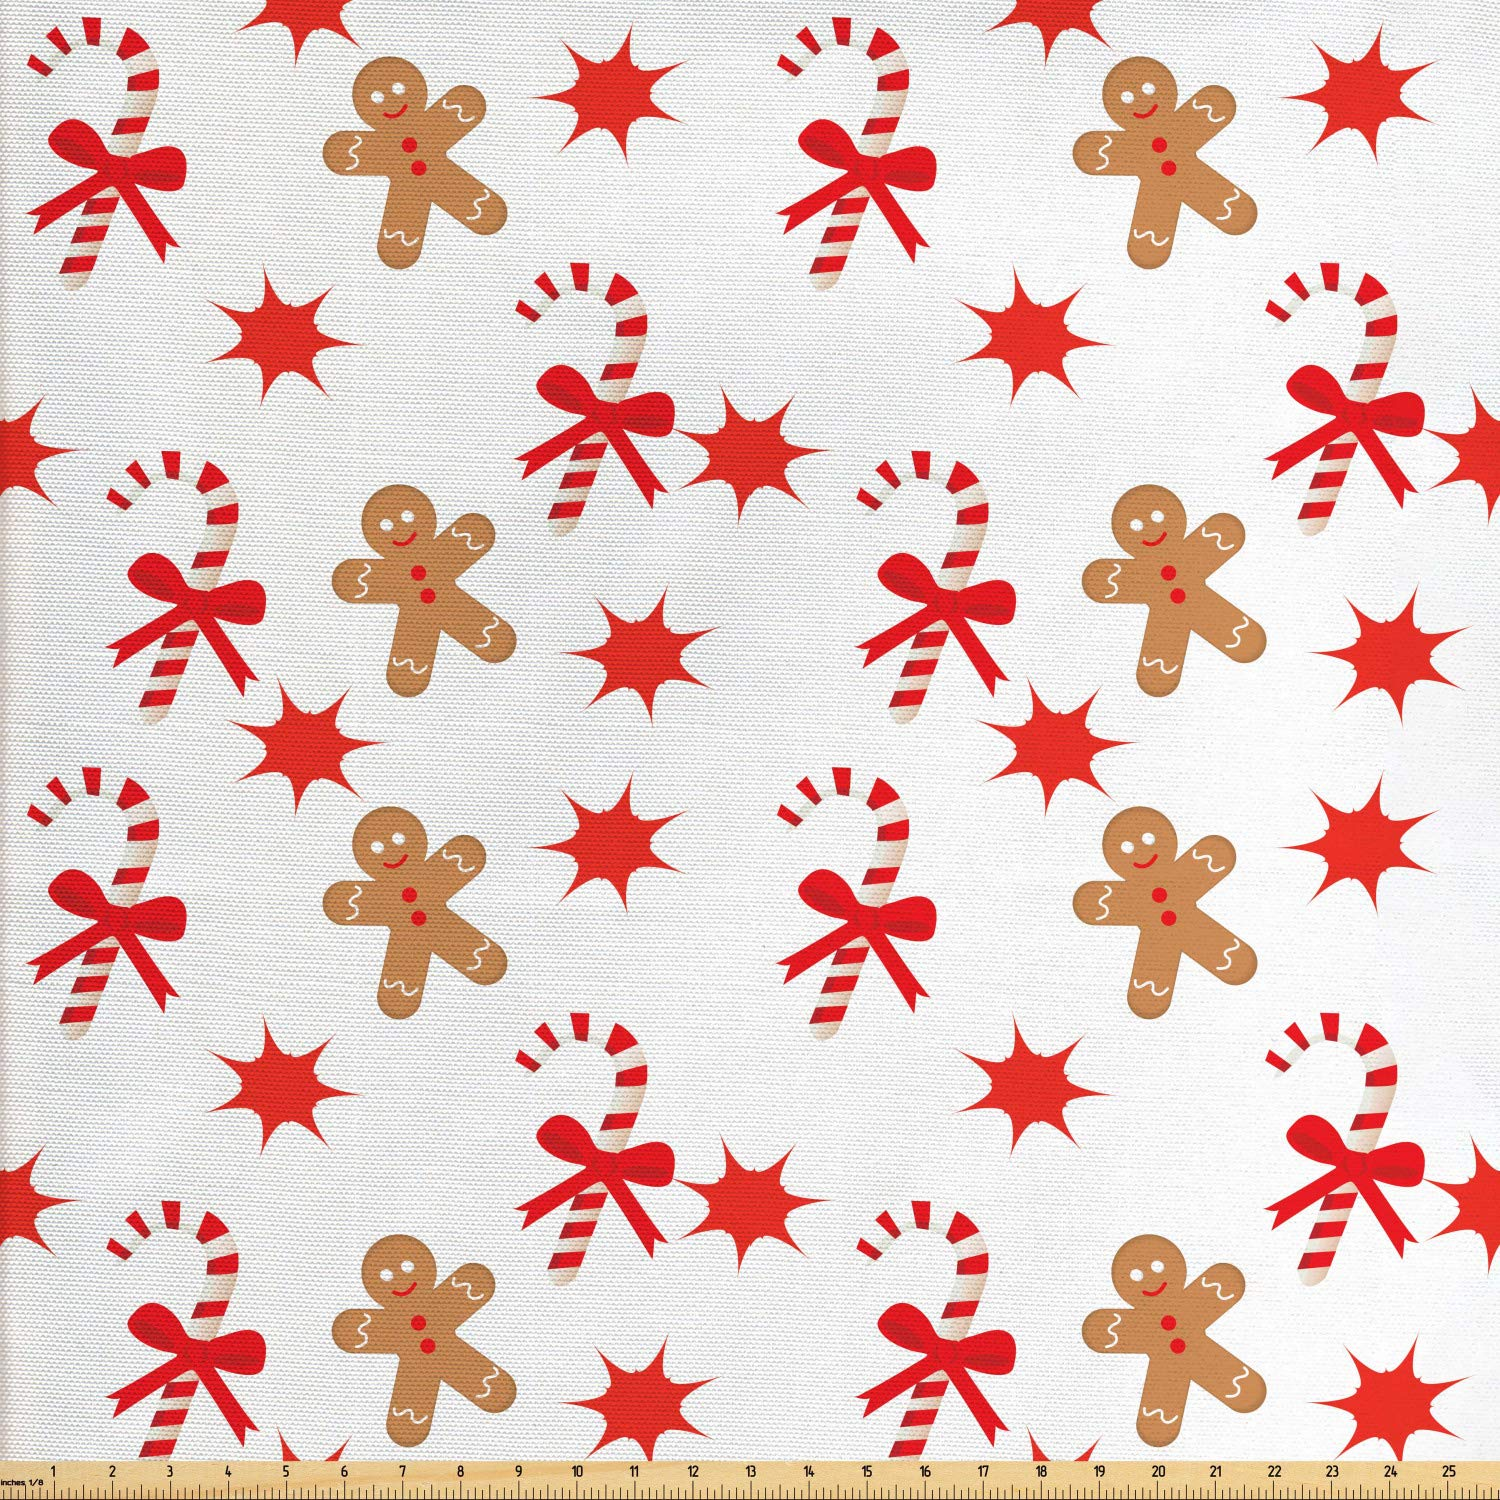 Ambesonne Gingerbread Man Fabric by The Yard, Candy Cane with Bowties Red Star Figures Gingerbread Man Pattern, Decorative Fabric for Upholstery and Home Accents, 3 Yards, Sand Brown Orange